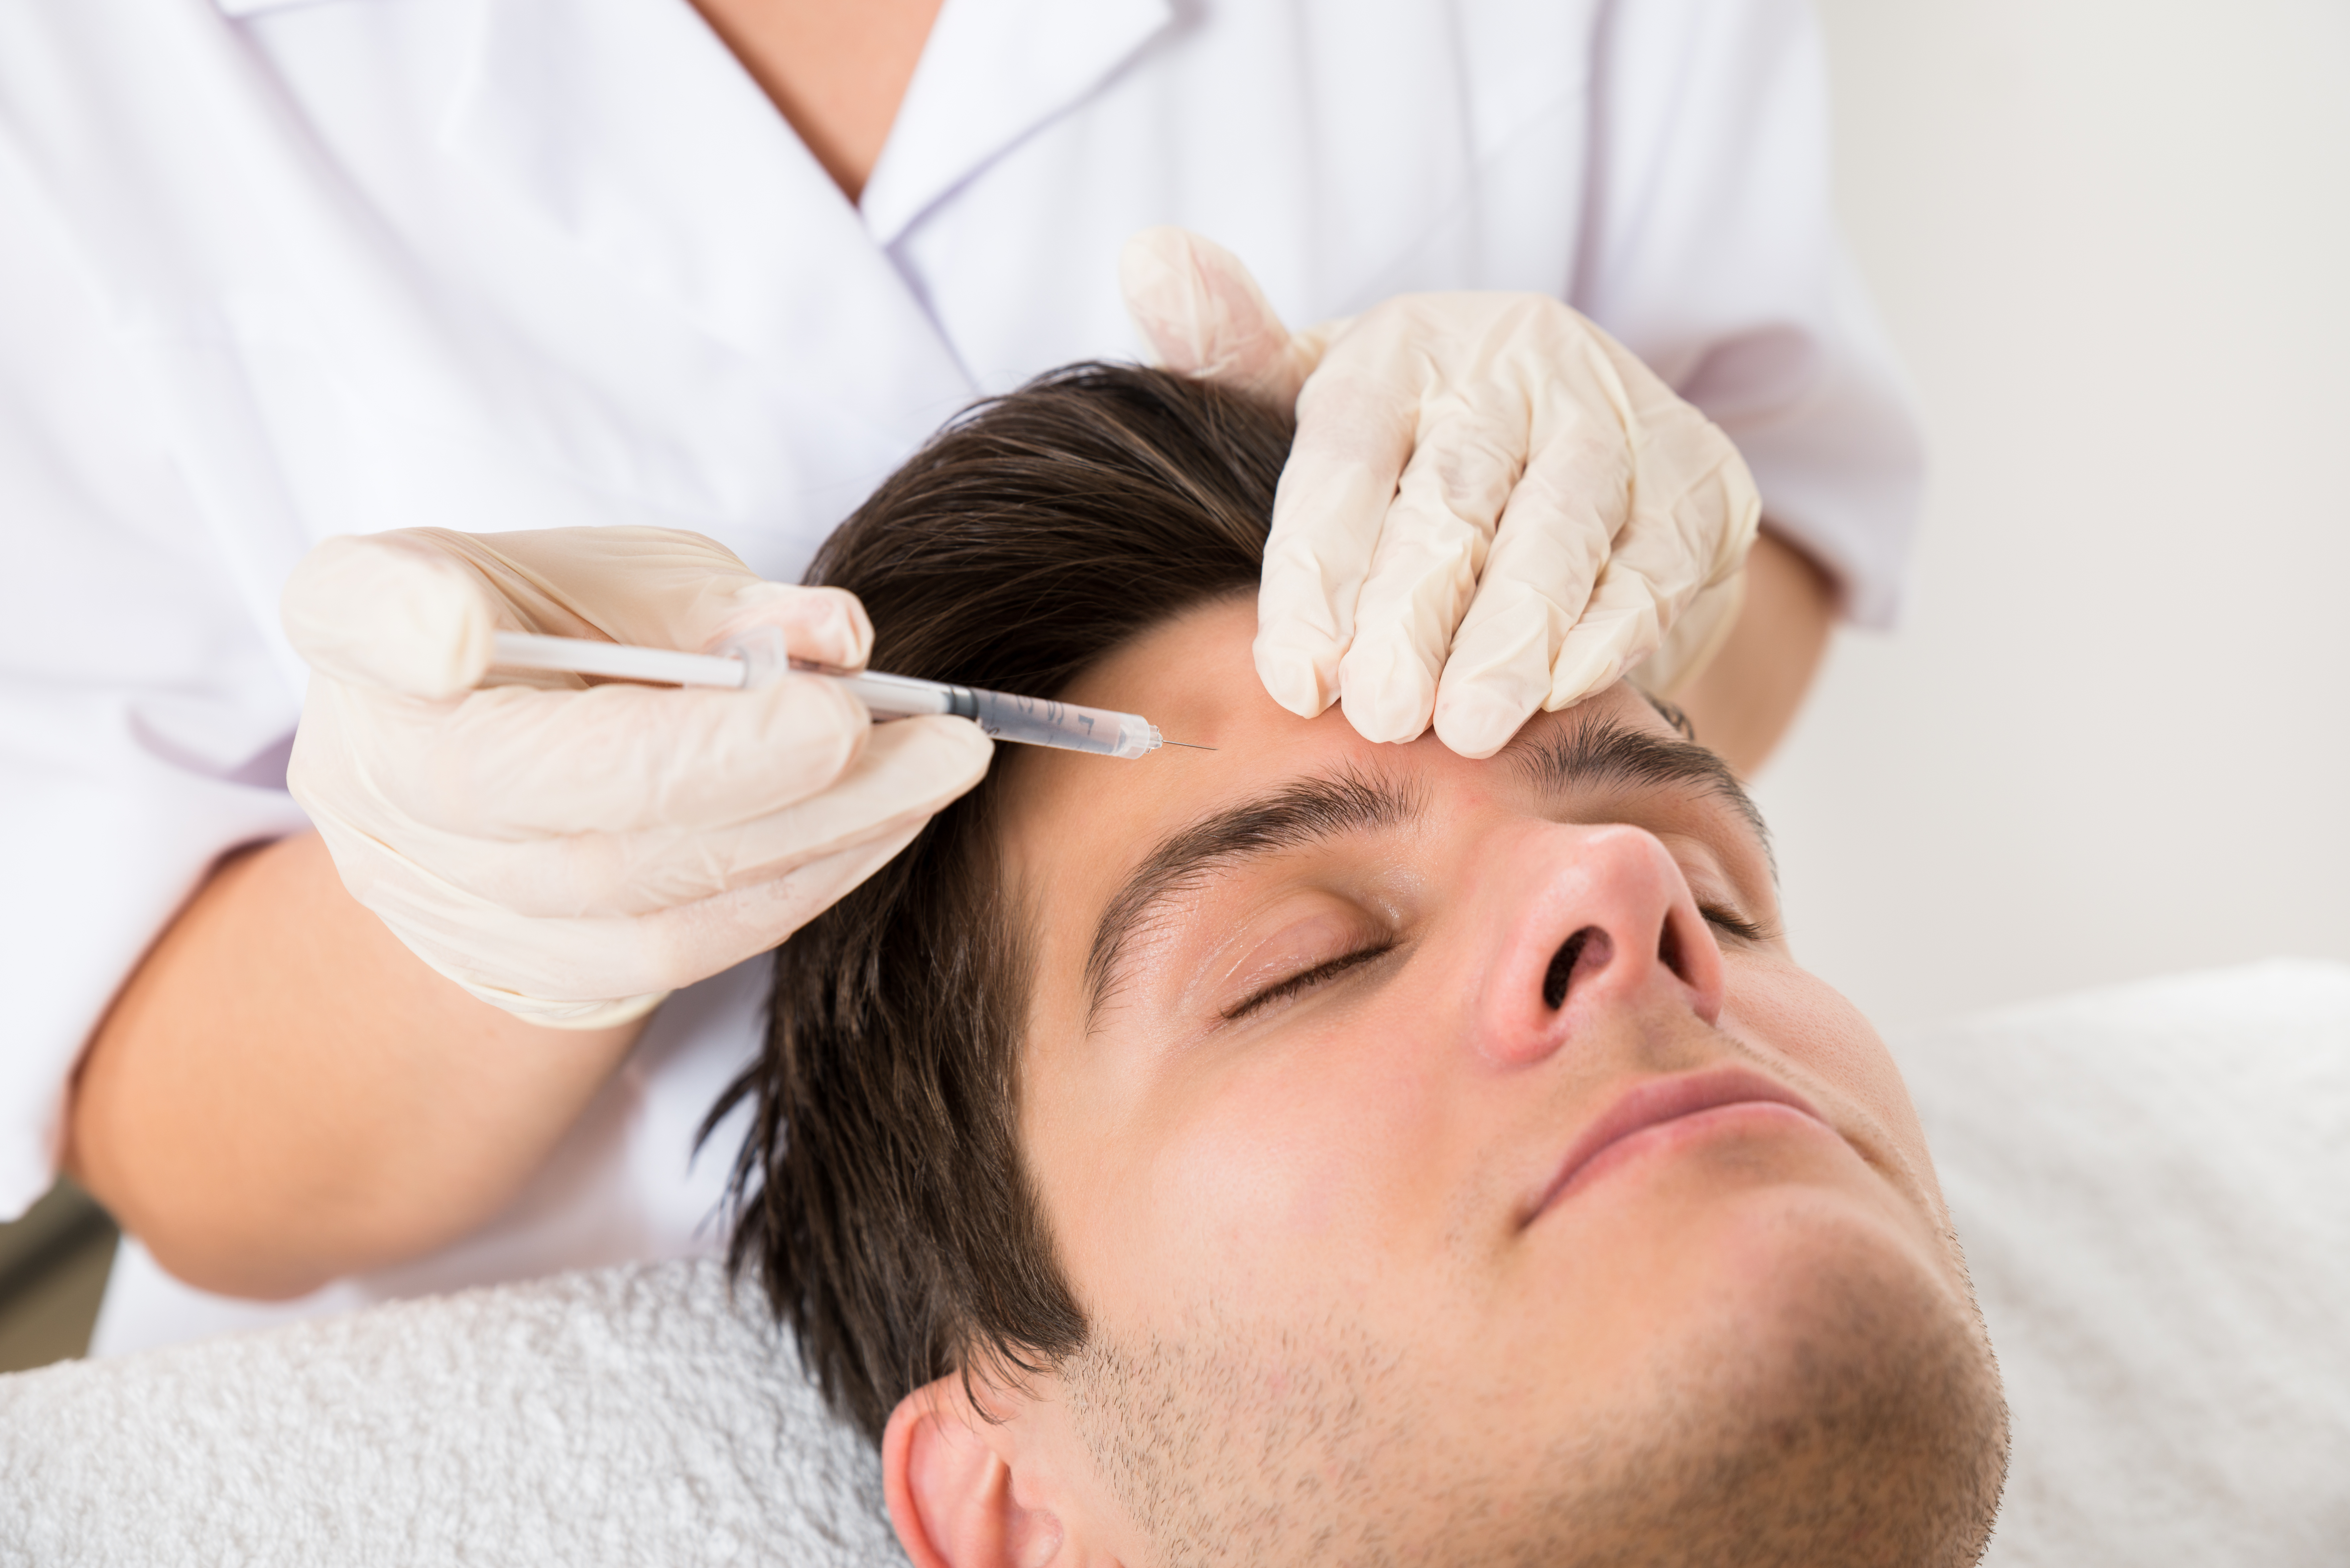 Why Botox Treatment should only be carried out by a medical professional